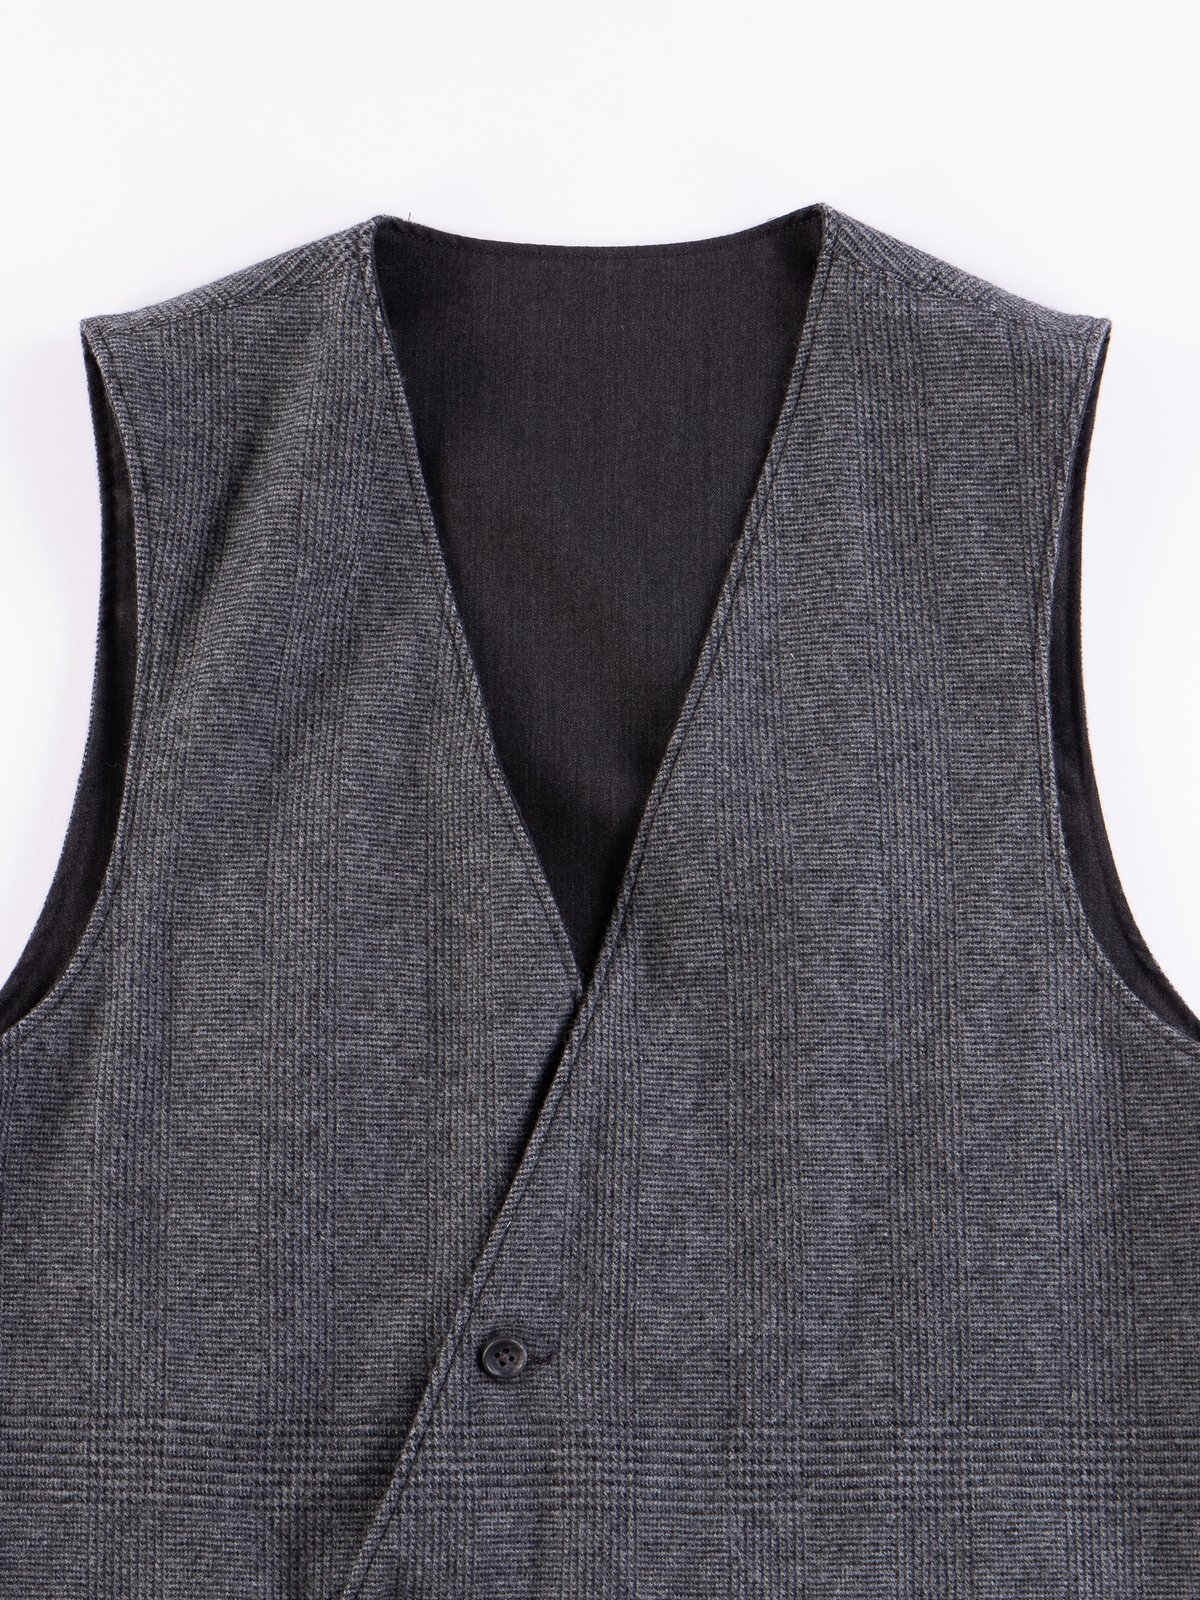 Charcoal Worsted Wool Gabardine Reversible Vest - Image 6